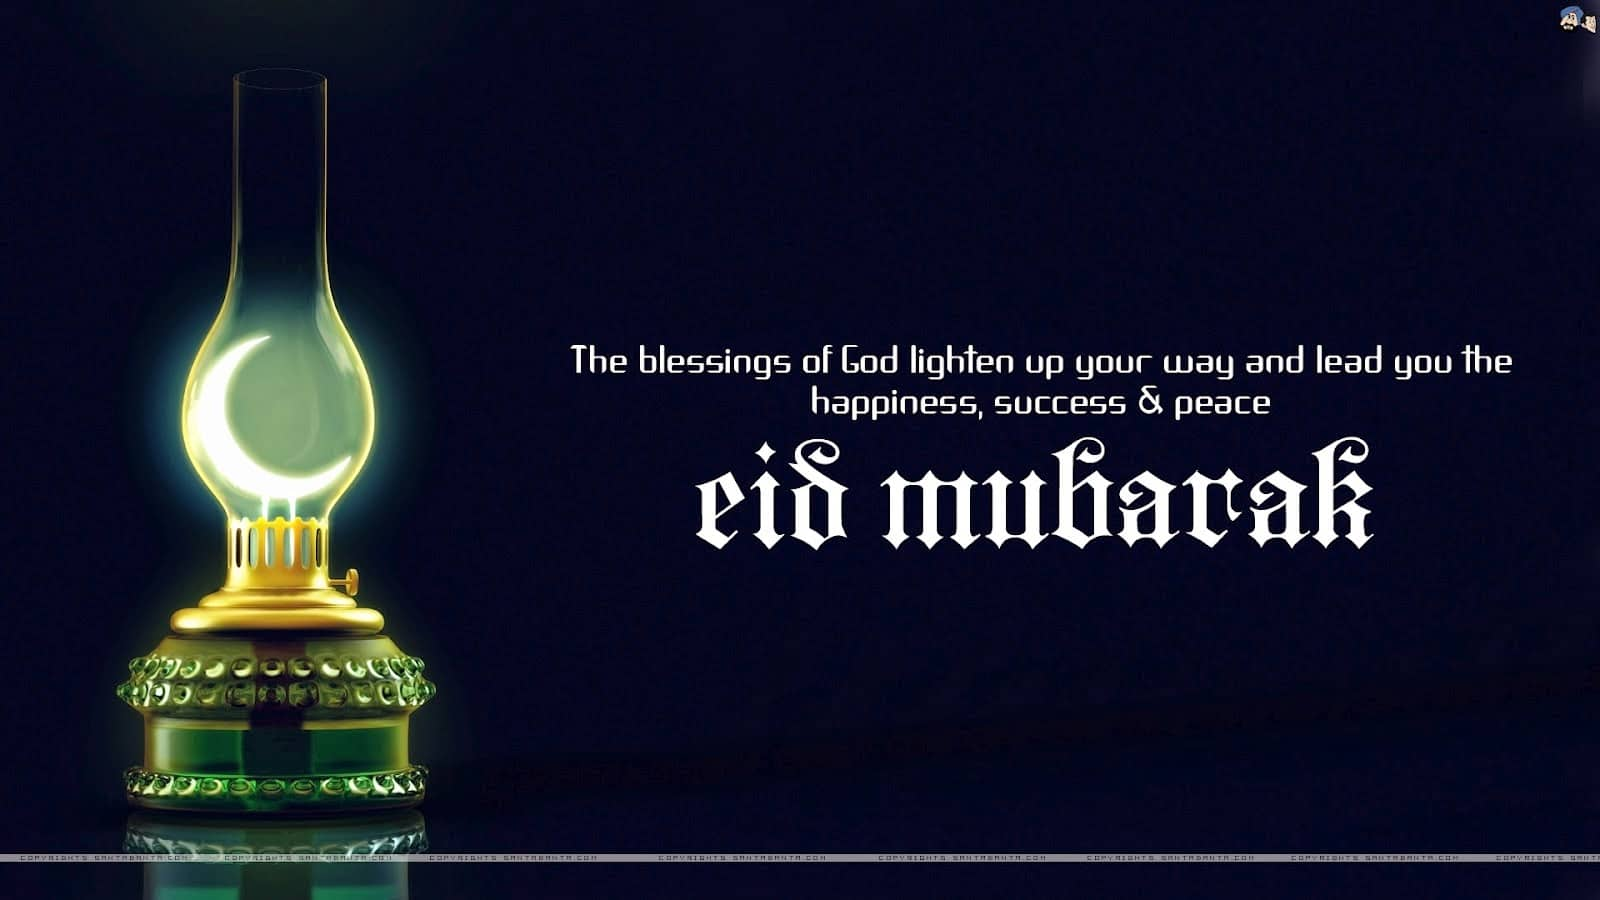 happy_eid_ul_fitr_mubarak_quote_1436h